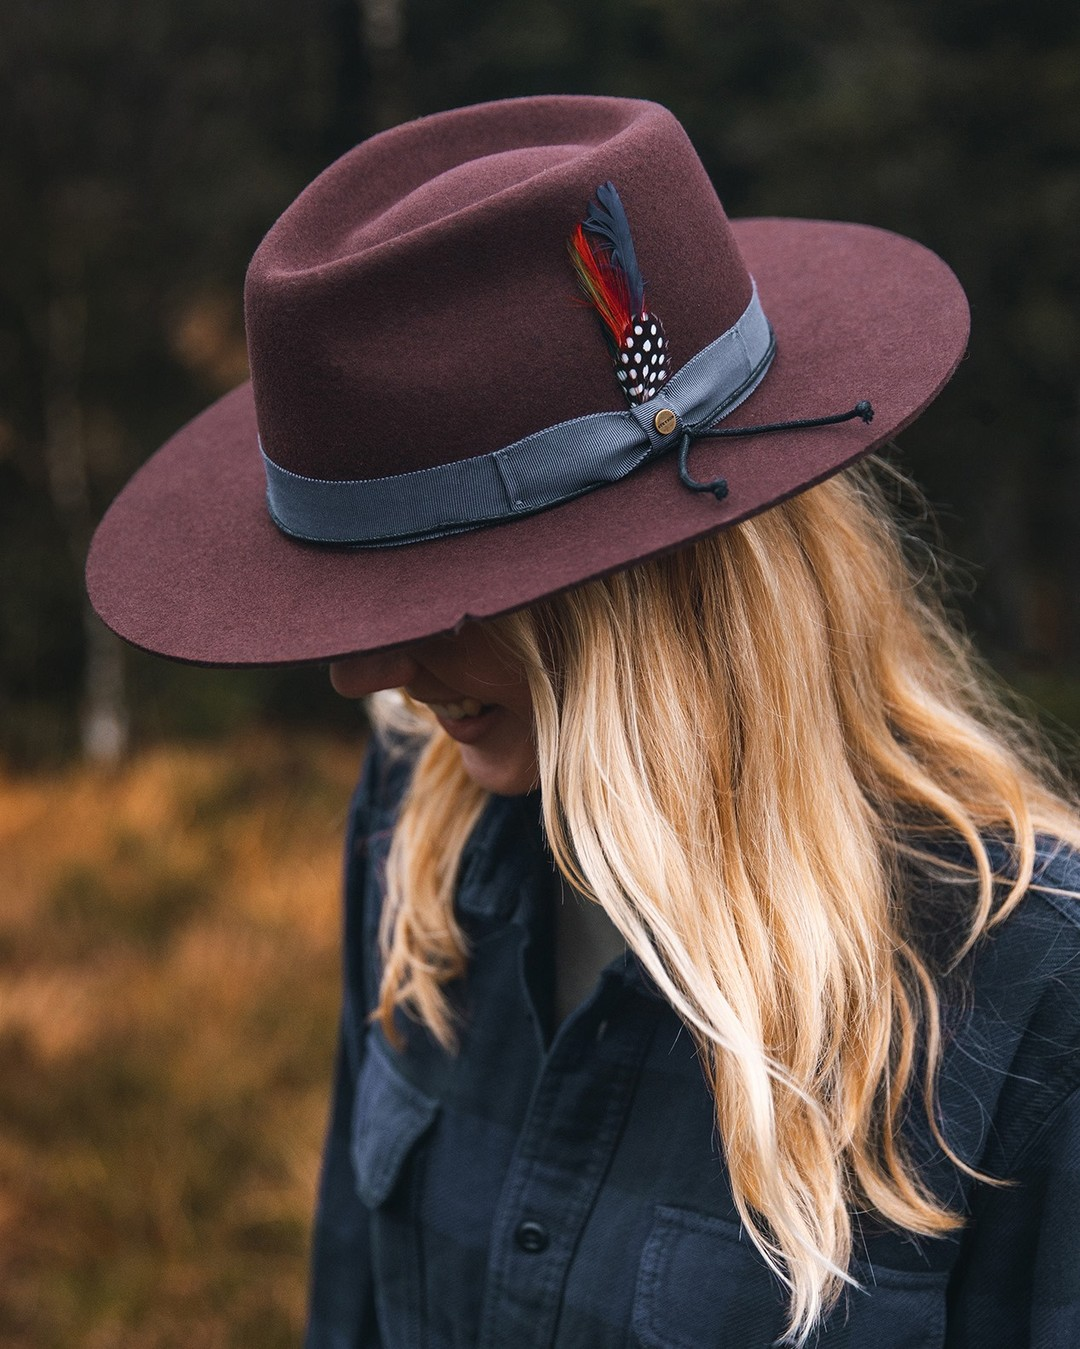 Lady-in-red--muenchmax-stetsonoutdoor-stetson-stetsoneurope-collection-autumnwinter2021-aw21-hat-hats-outdoor-nature-travelling-fashion